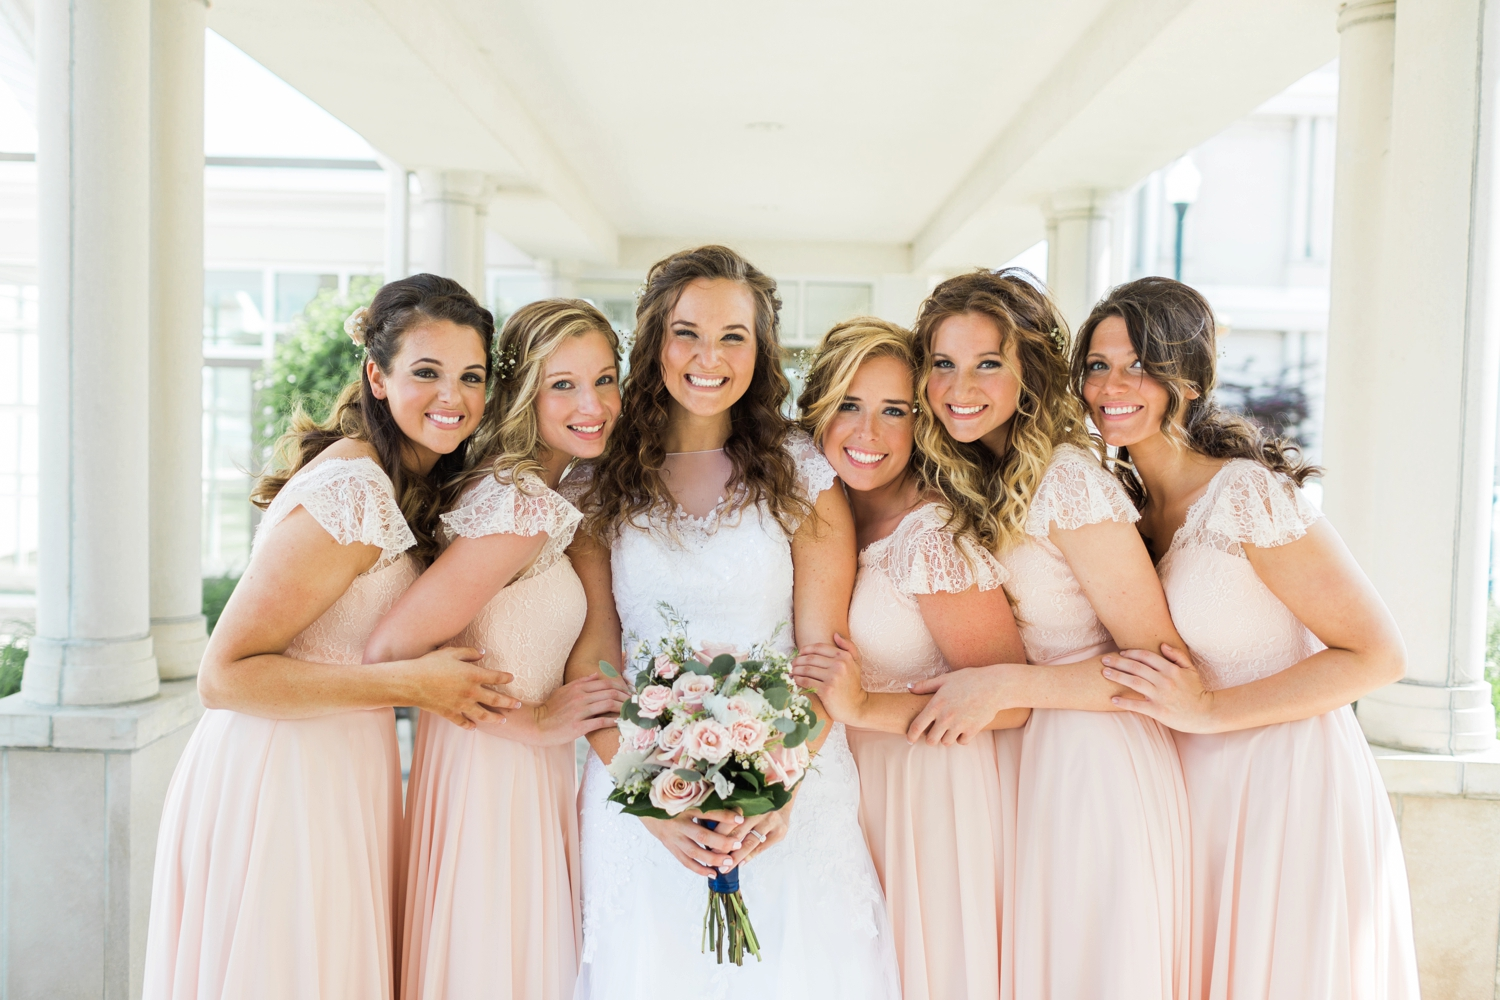 Community_Life_Center_Indianapolis_Indiana_Wedding_Photographer_Chloe_Luka_Photography_6929.jpg